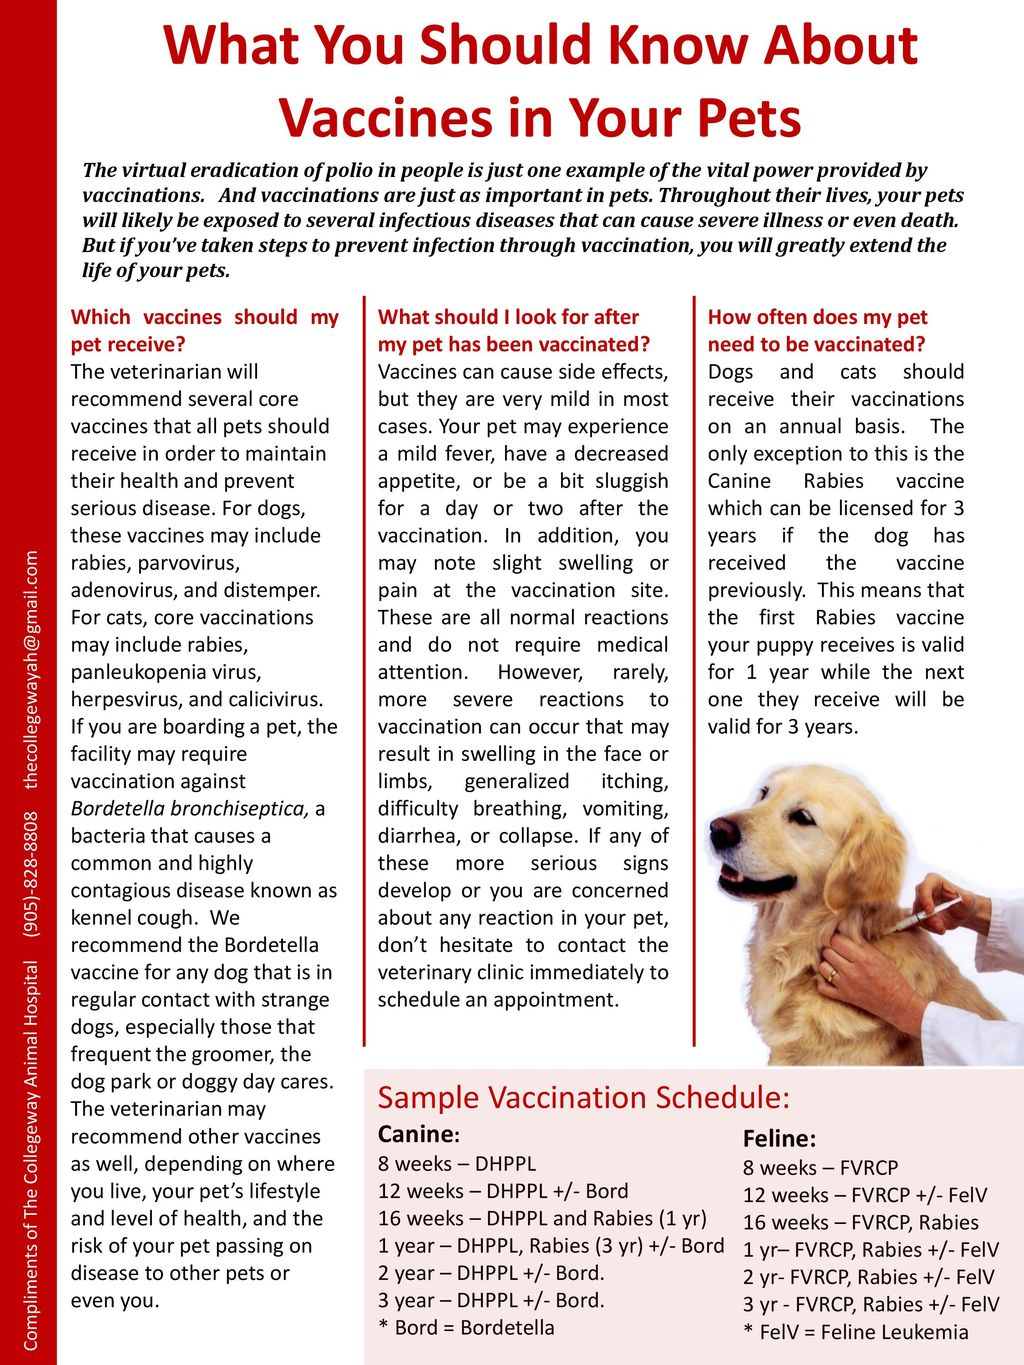 What You Should Know About Vaccines in Your Pets - ppt download